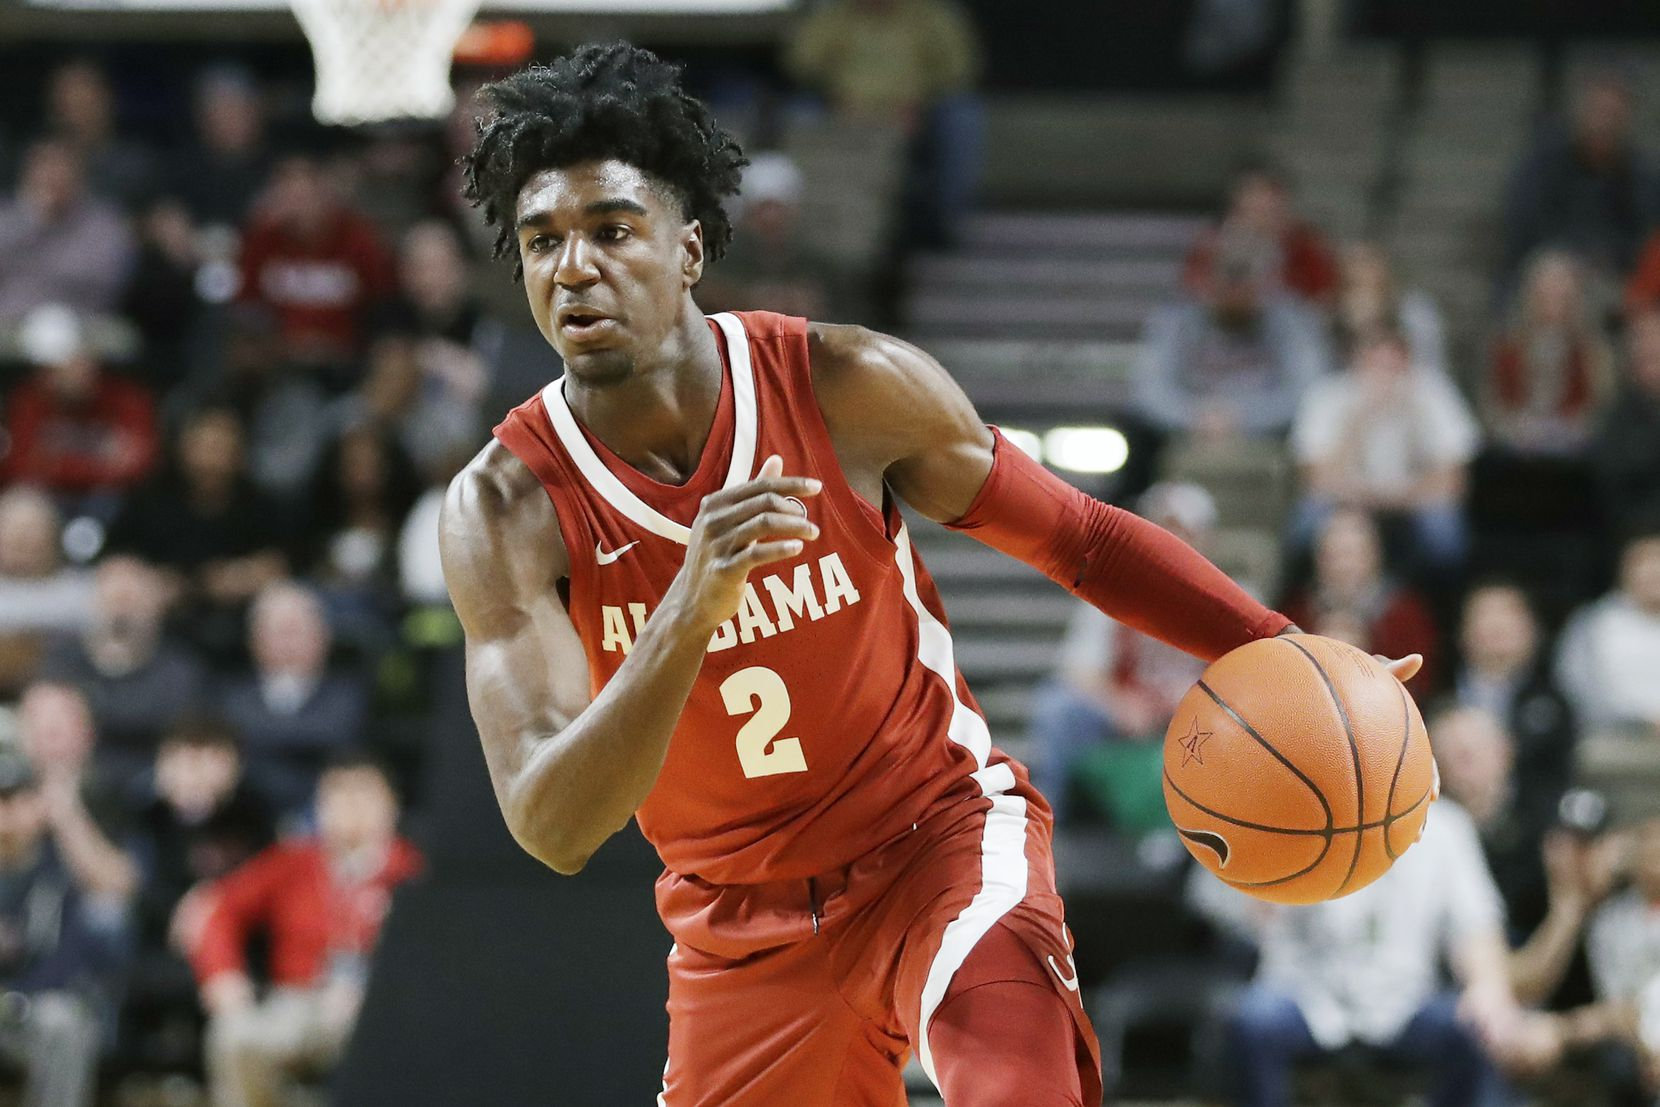 FILE - Alabama guard Kira Lewis Jr. is pictured during the first half of a game against Vanderbilt on Jan. 22, 2020, in Nashville, Tenn.